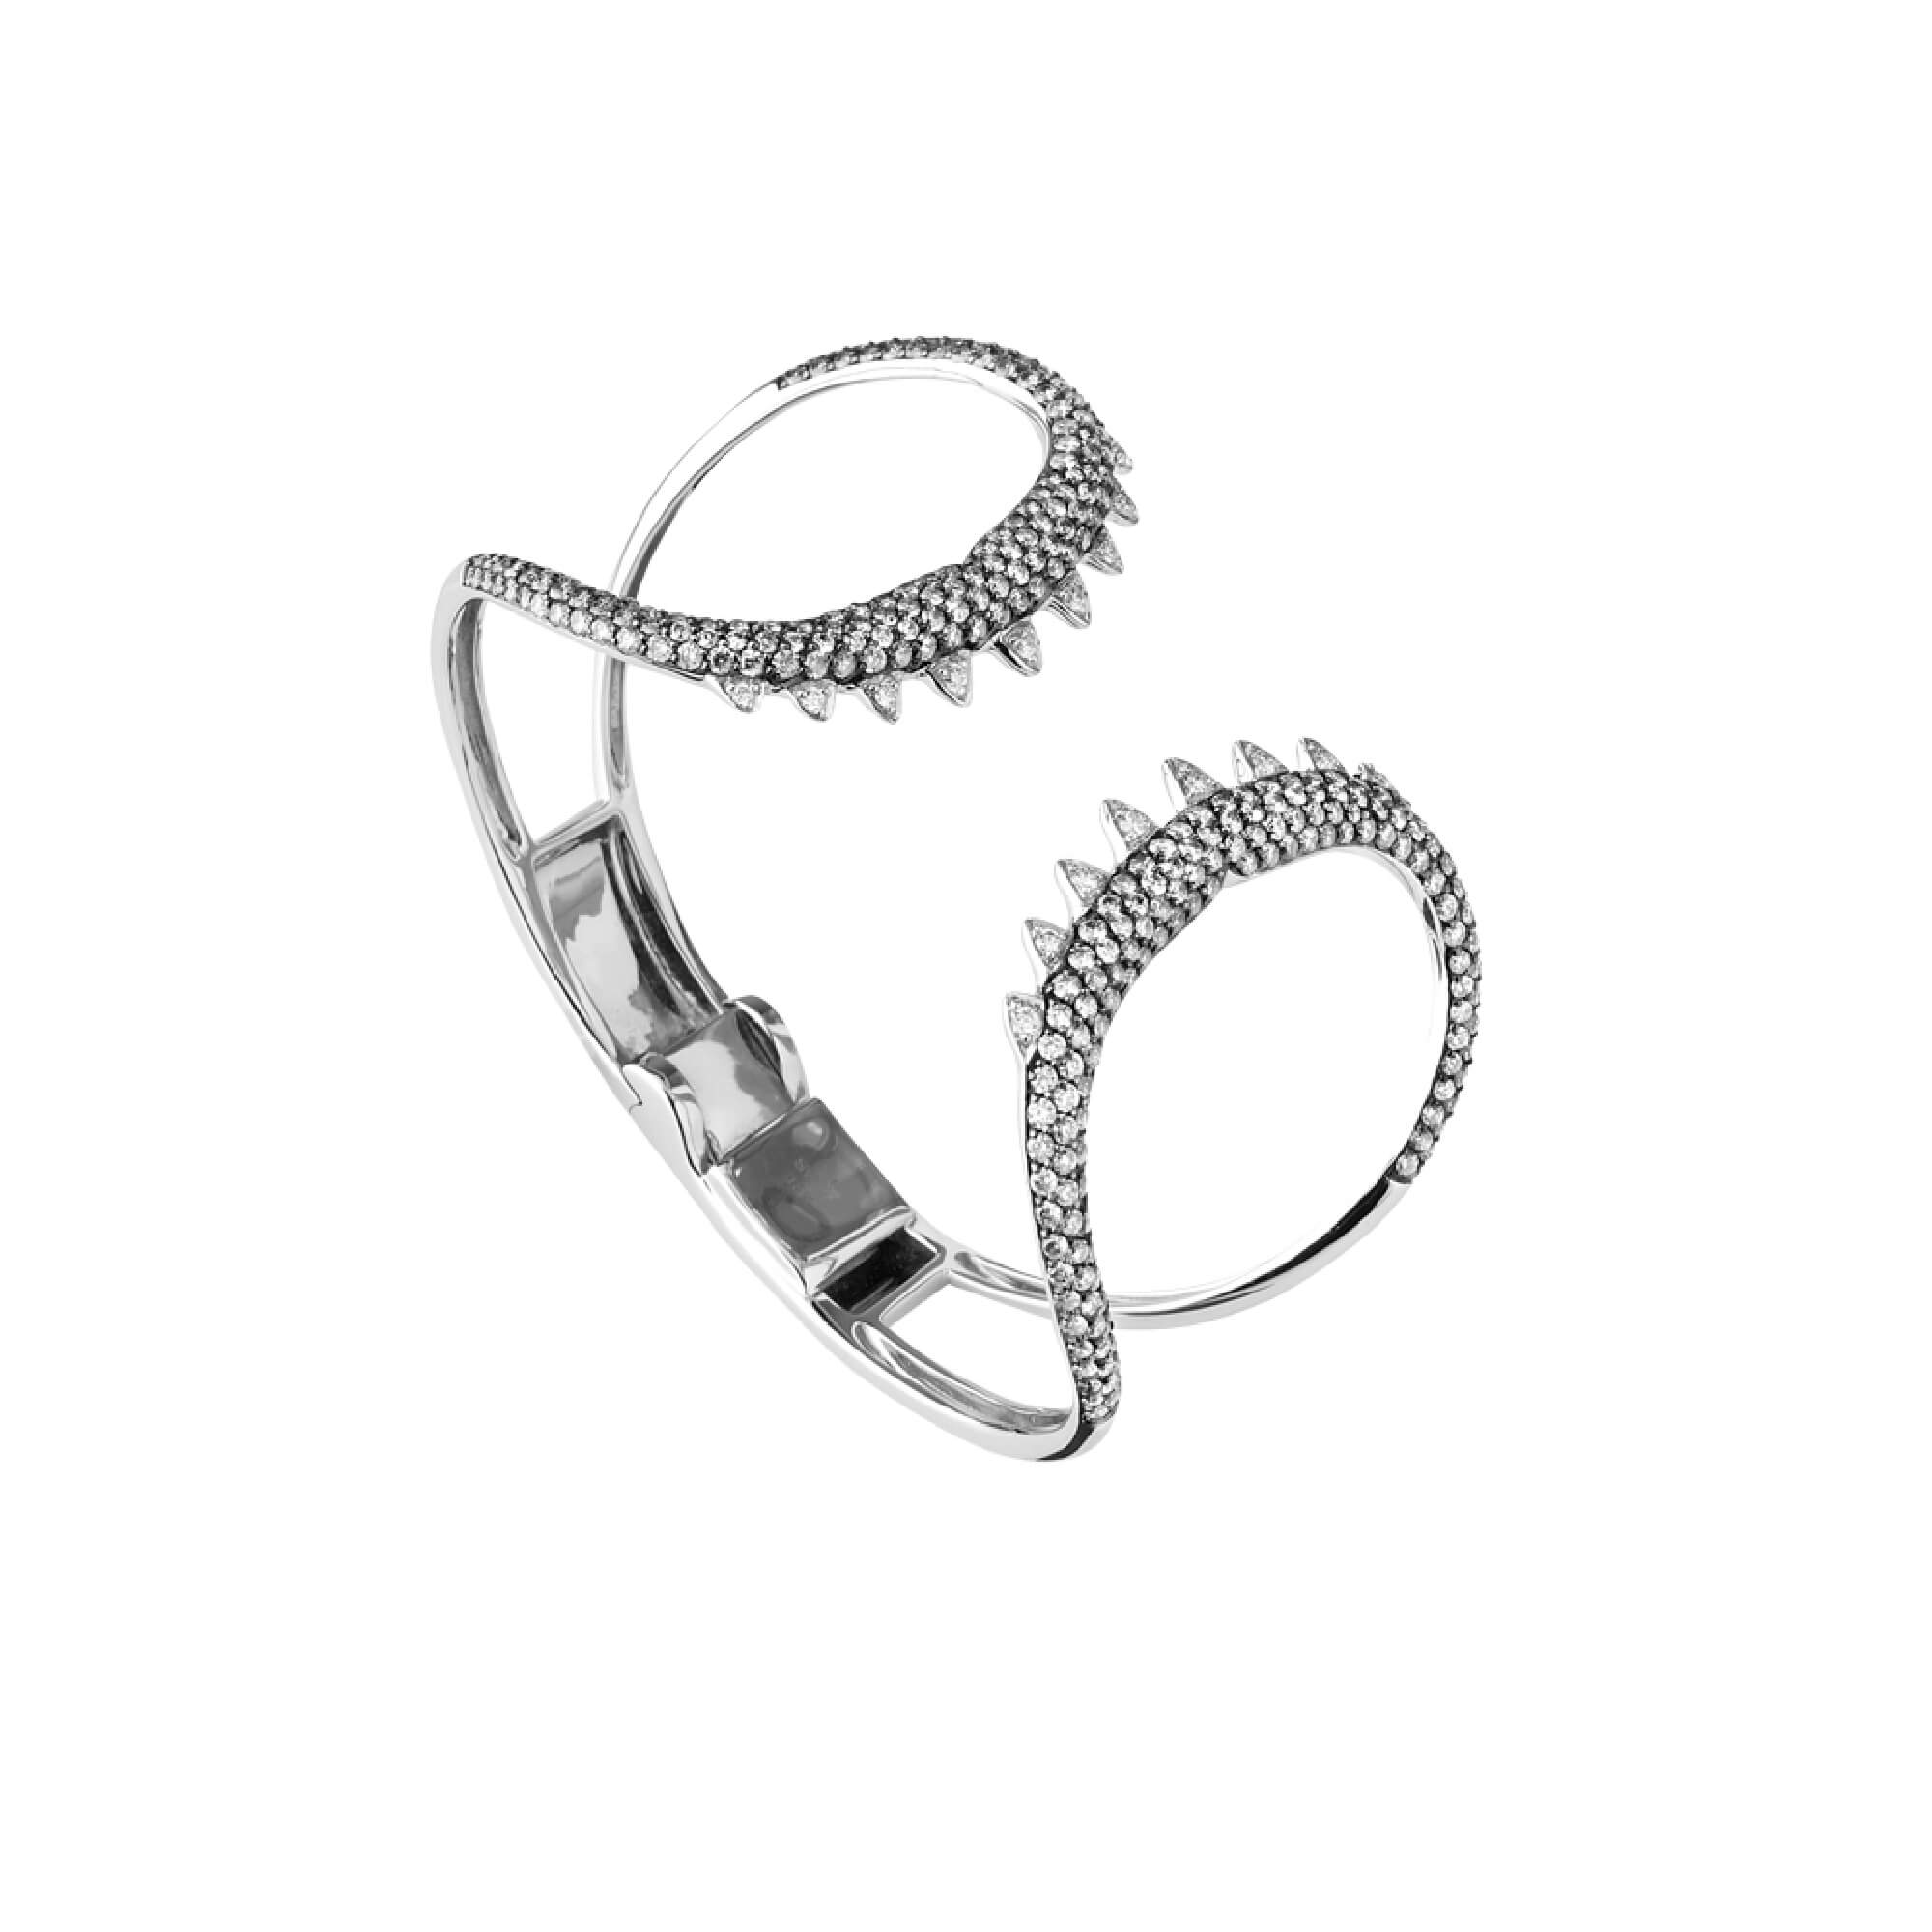 White Gold Shark Jaw Bracelet | Jewels Verne